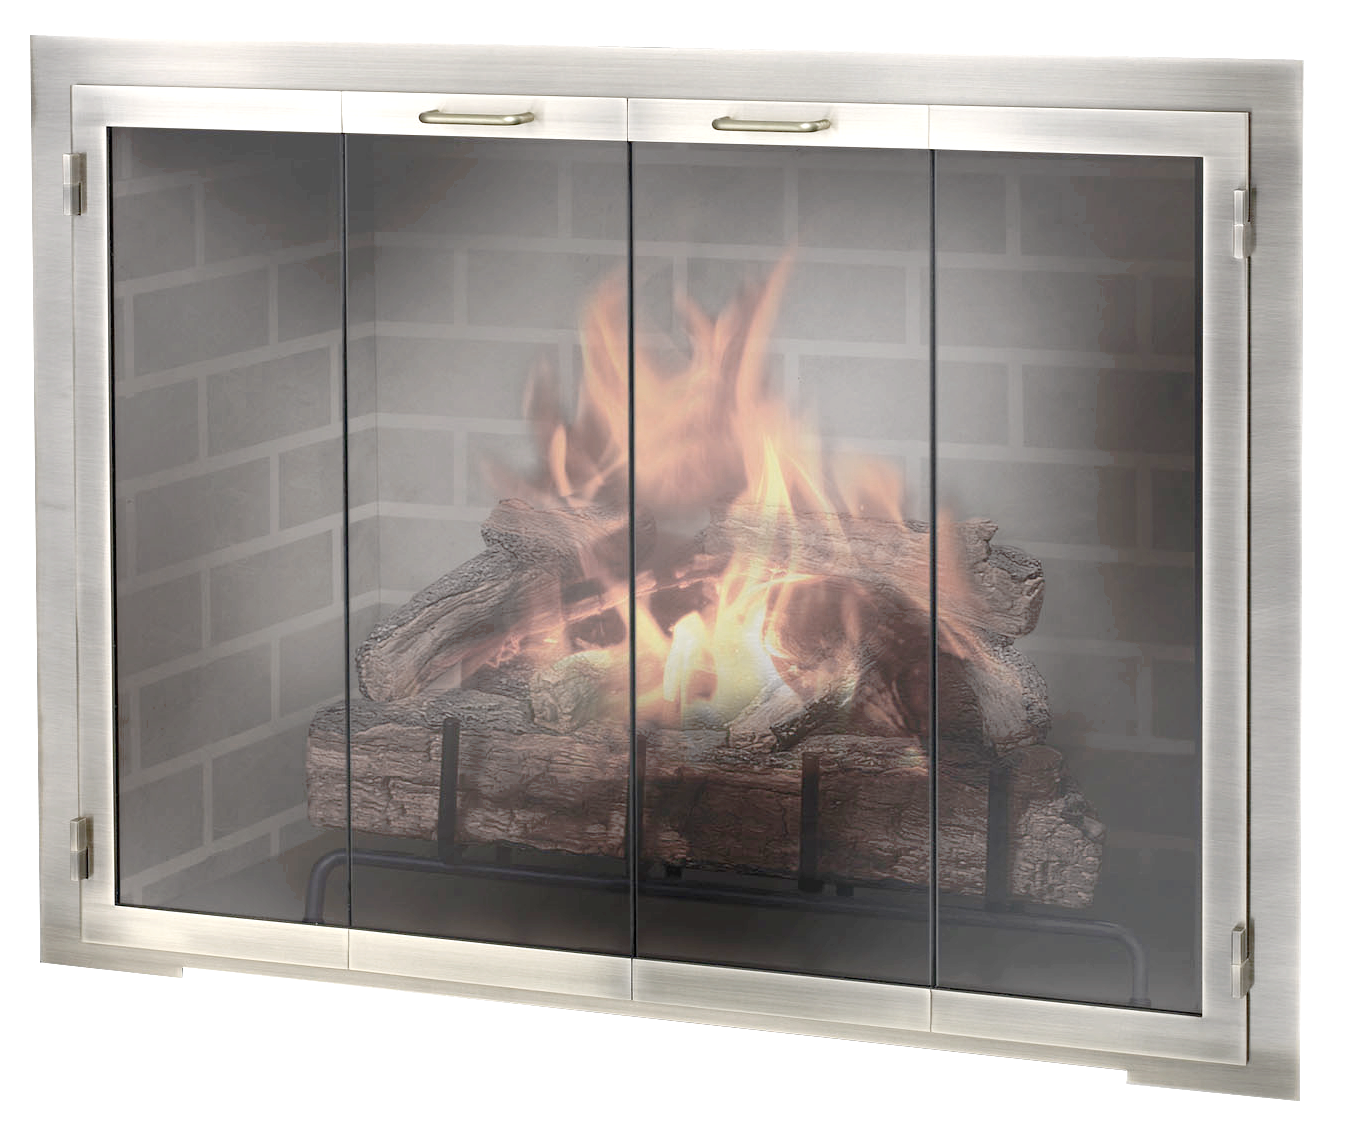 Stainless Steel Outdoor Masonry Fireplace Door | Fireplace doors ...